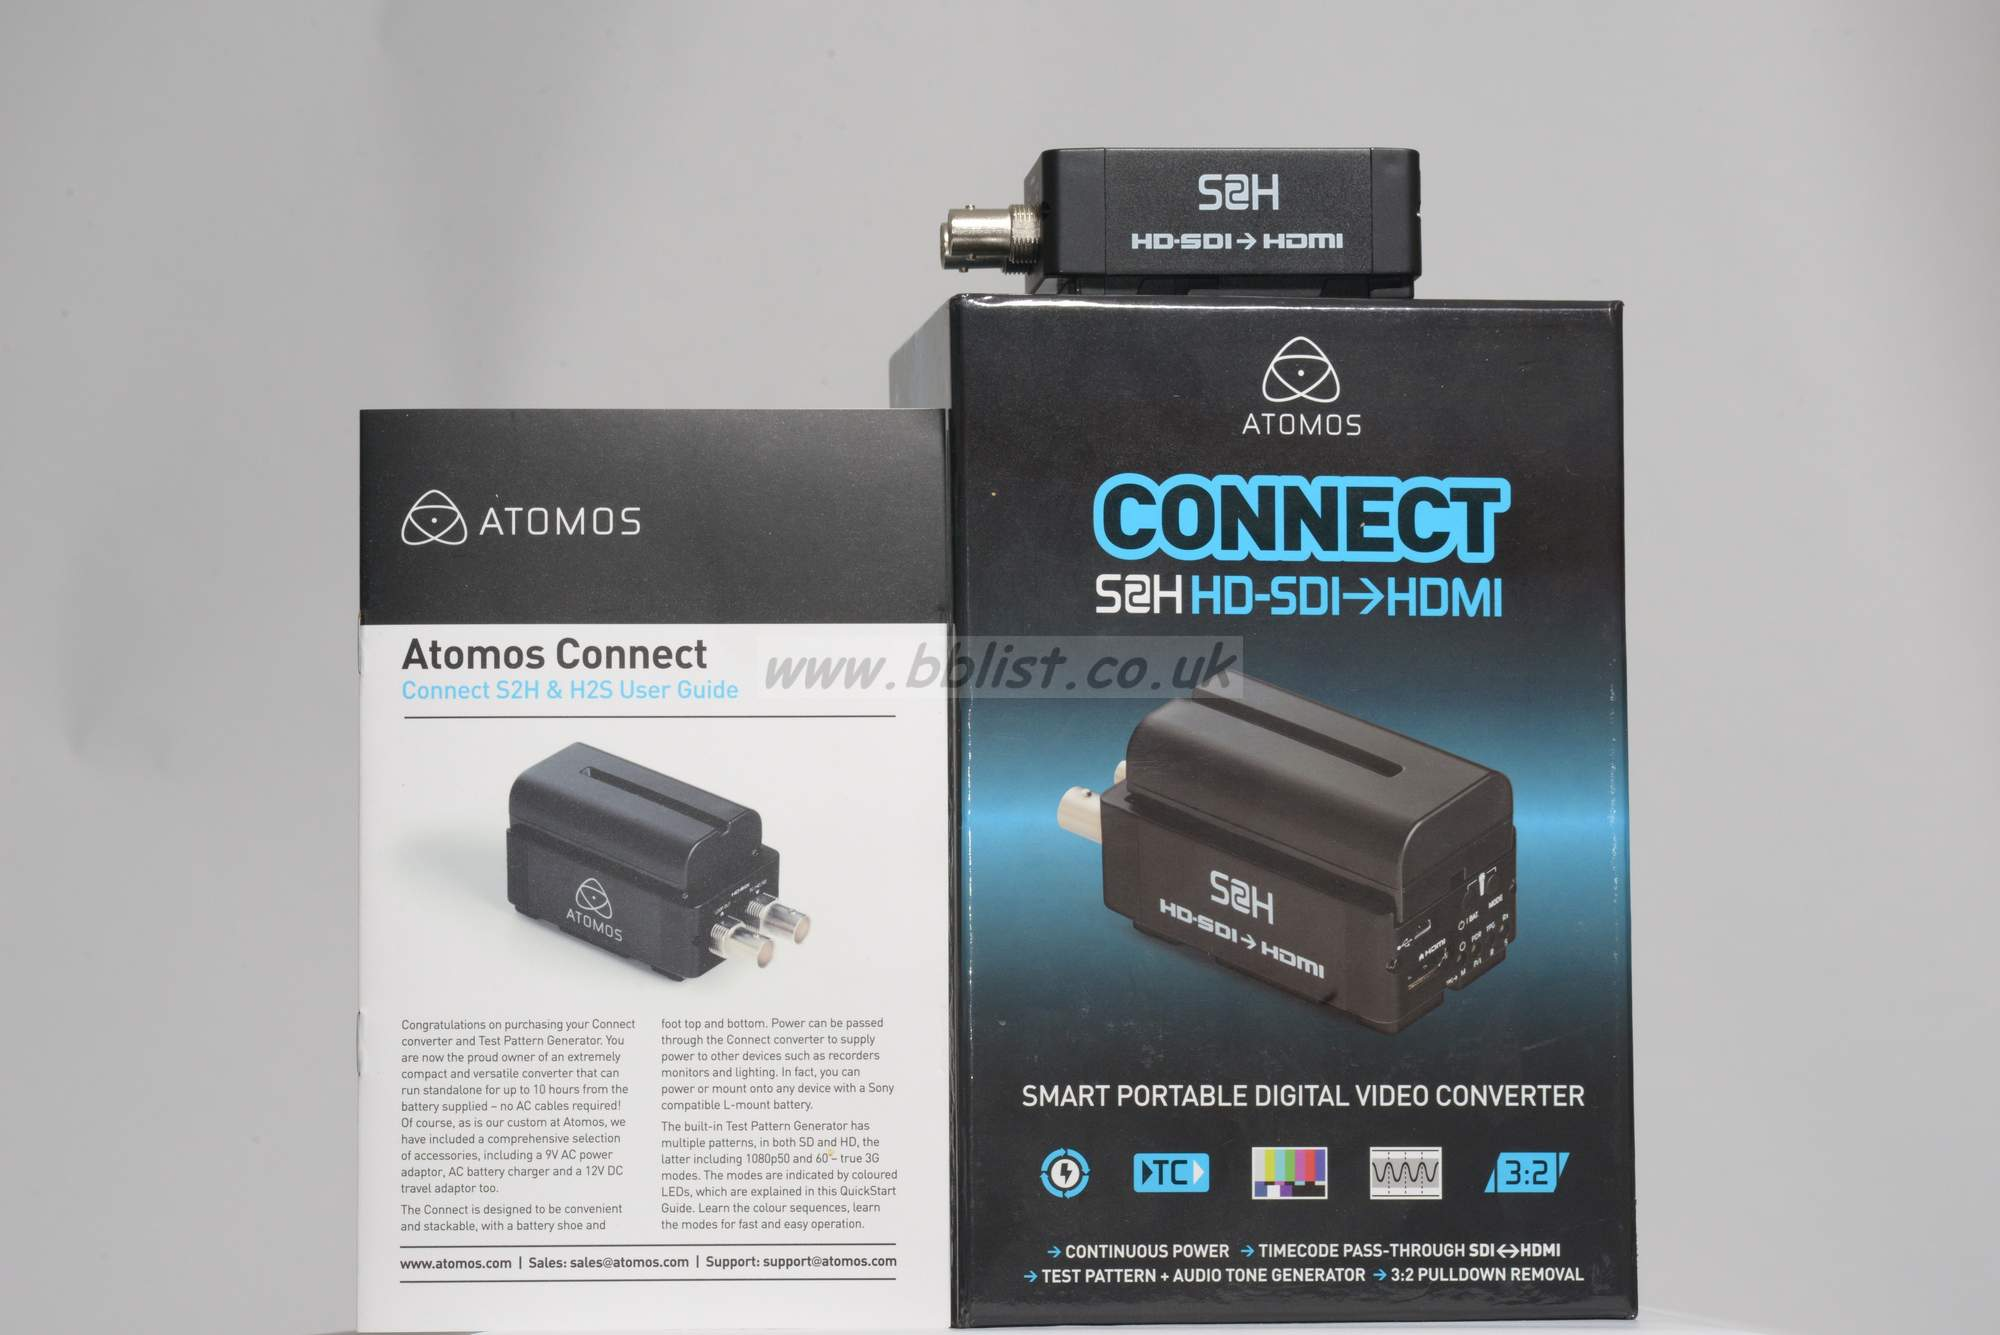 Atomos Connect HDSDI TO HDMI converter